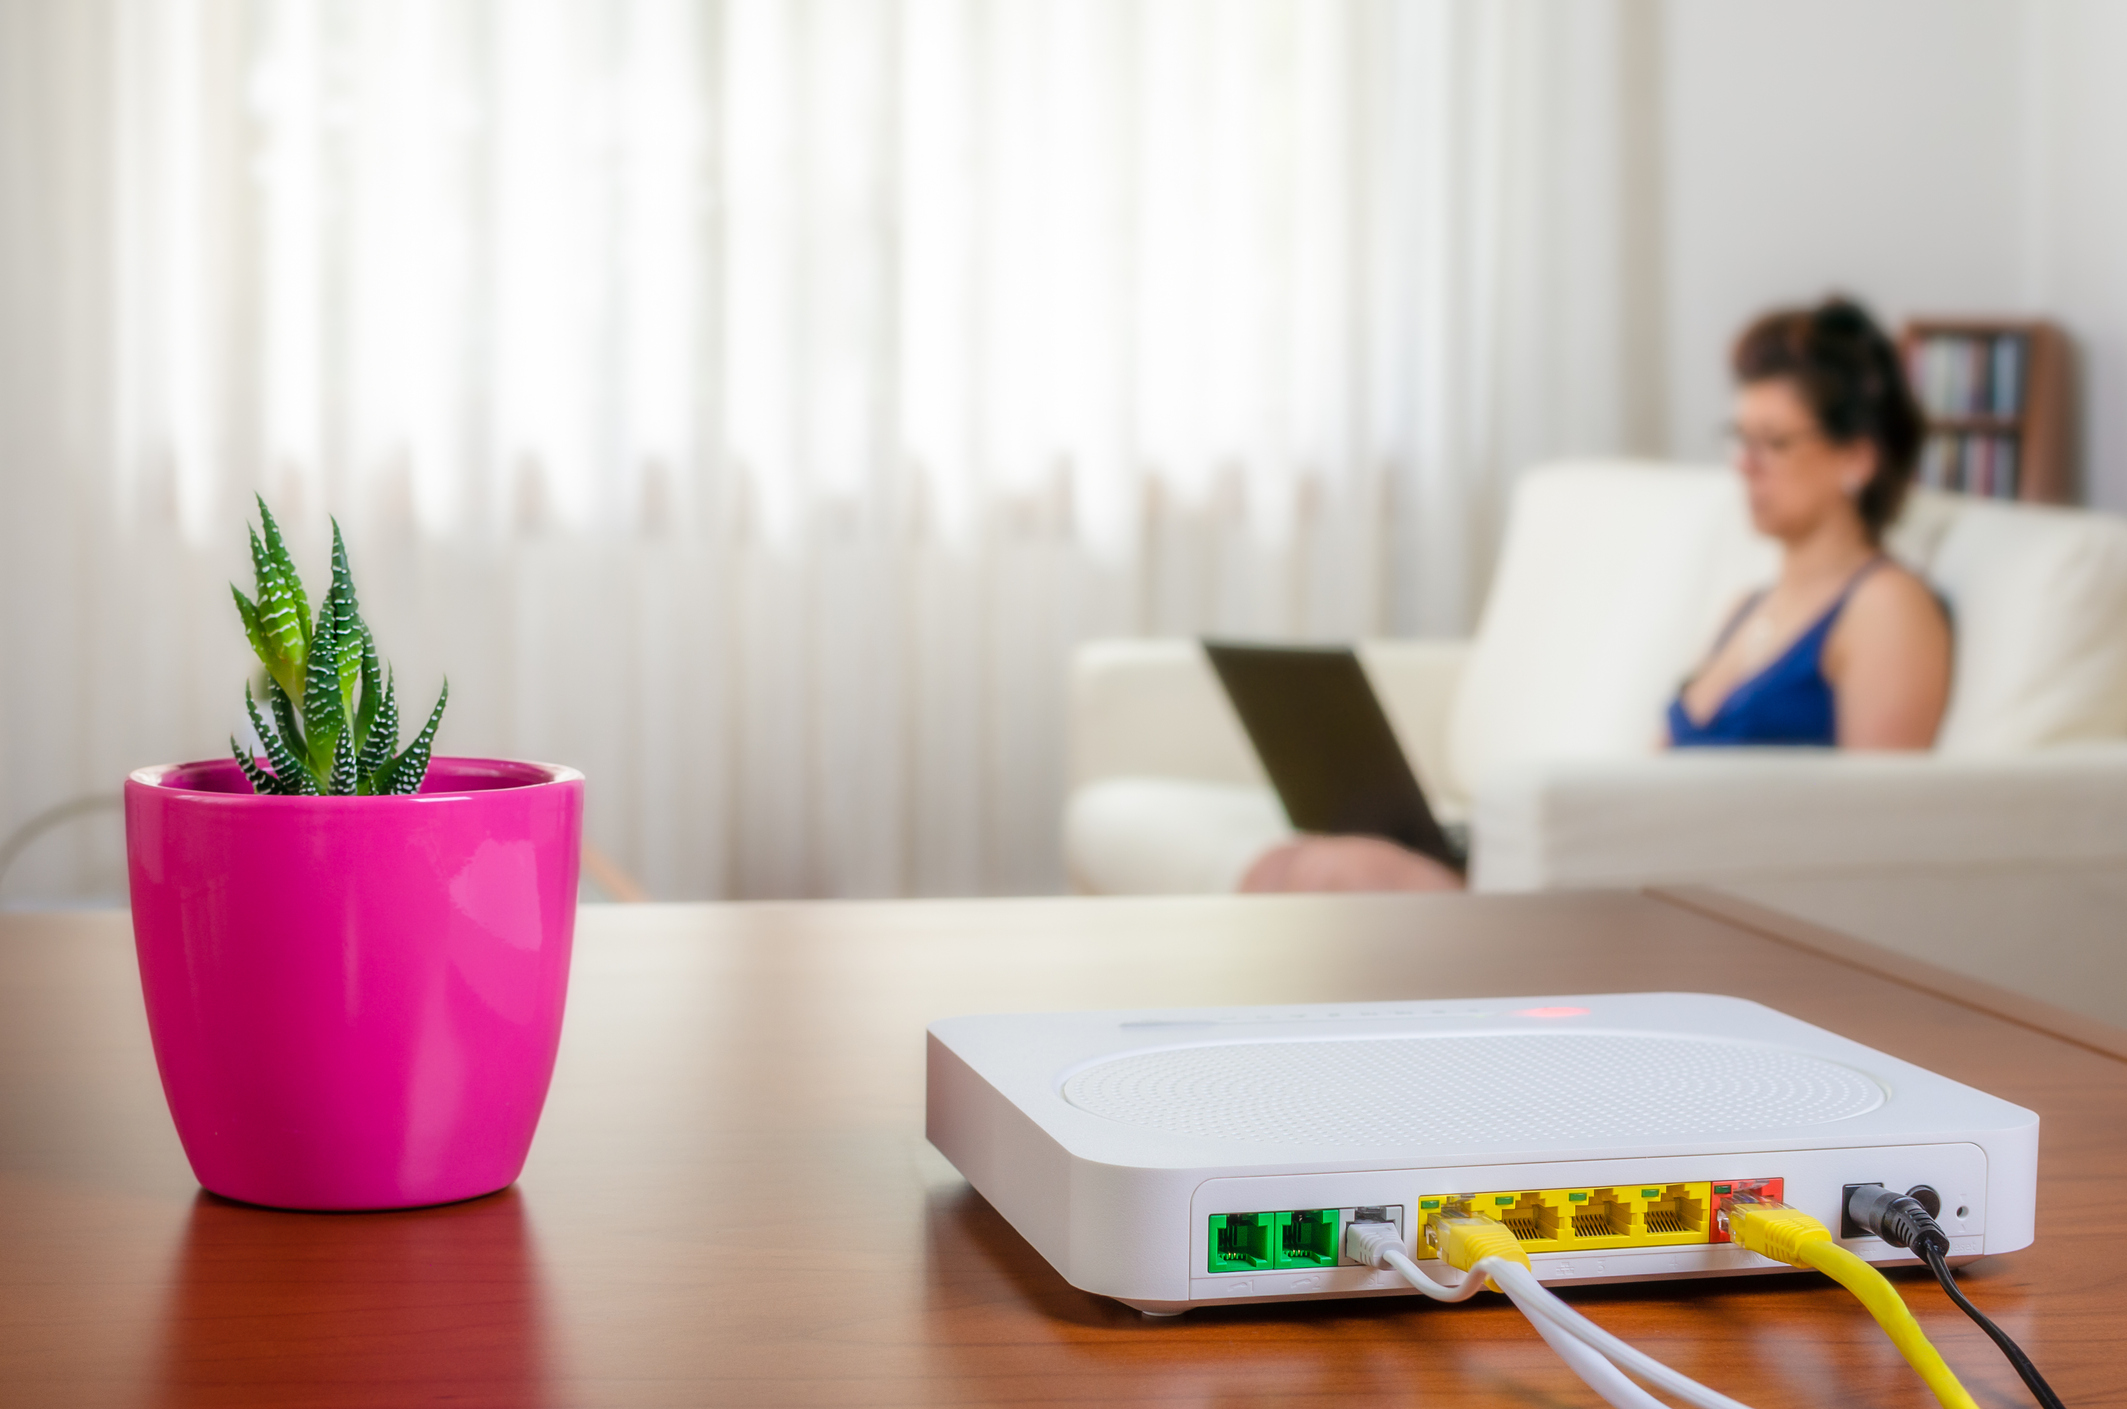 Picture of a router and a plant